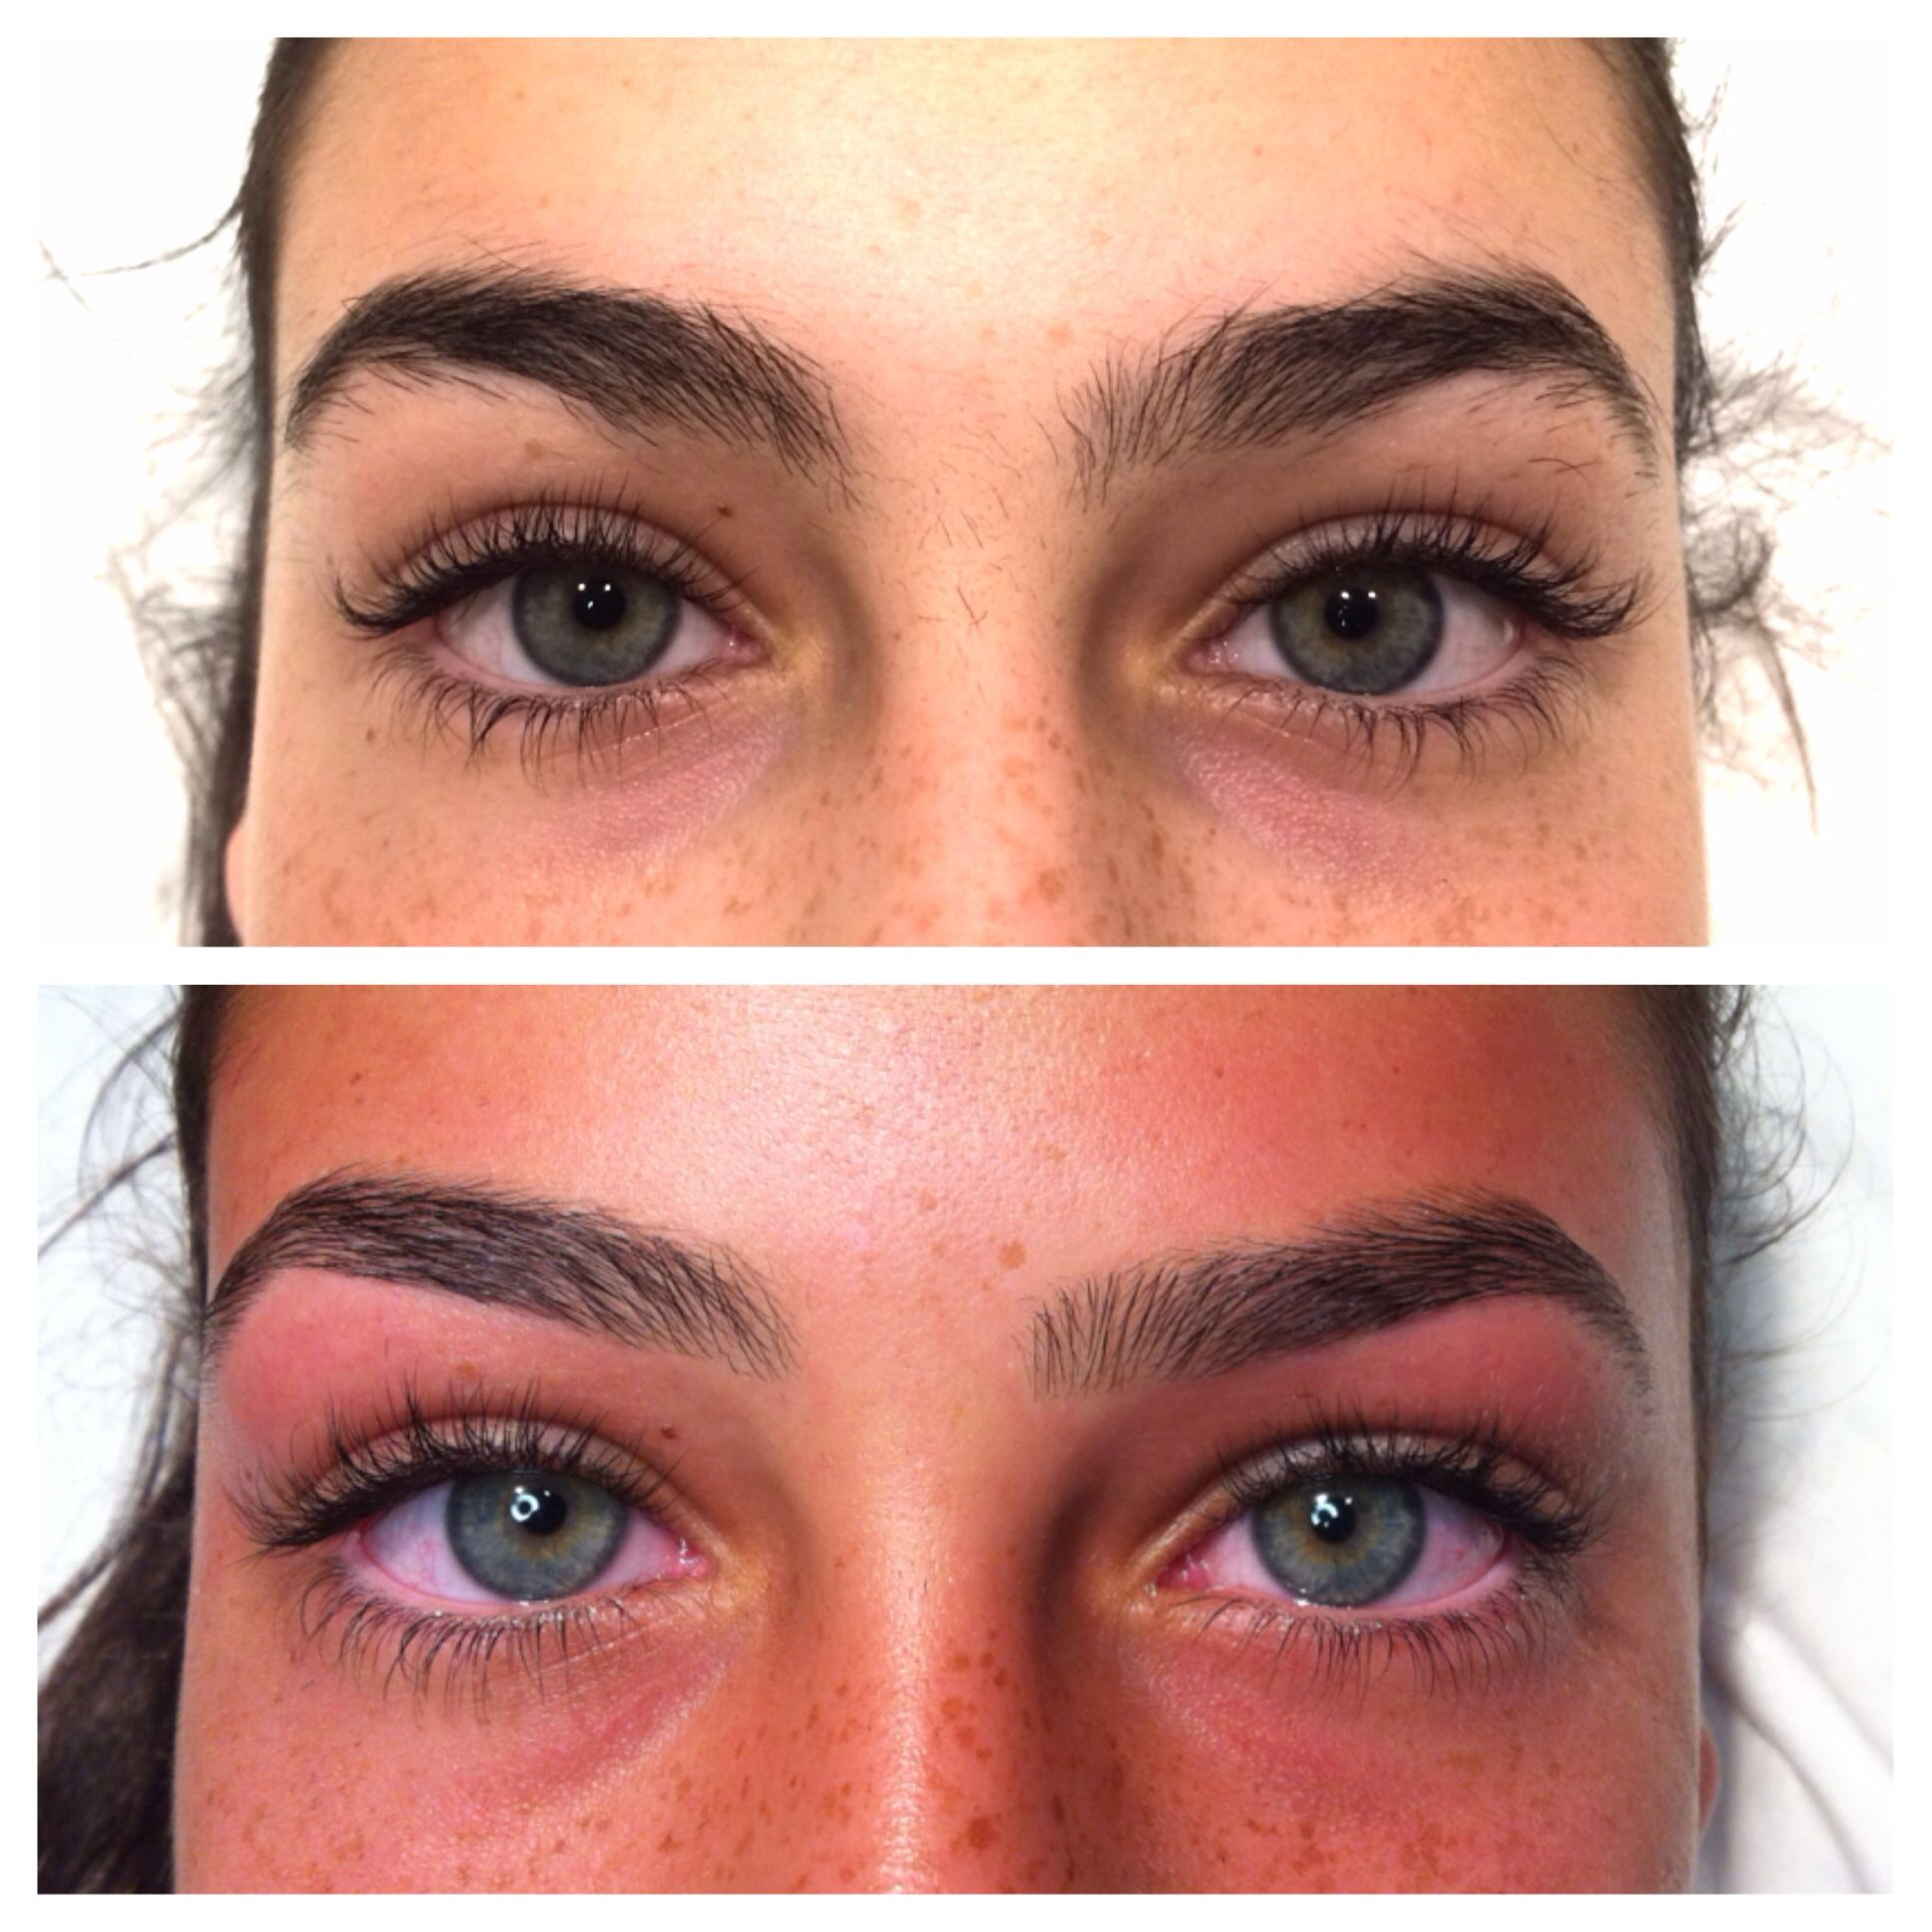 Eyebrow shaping - before and after | Makeup ️ | Pinterest ...